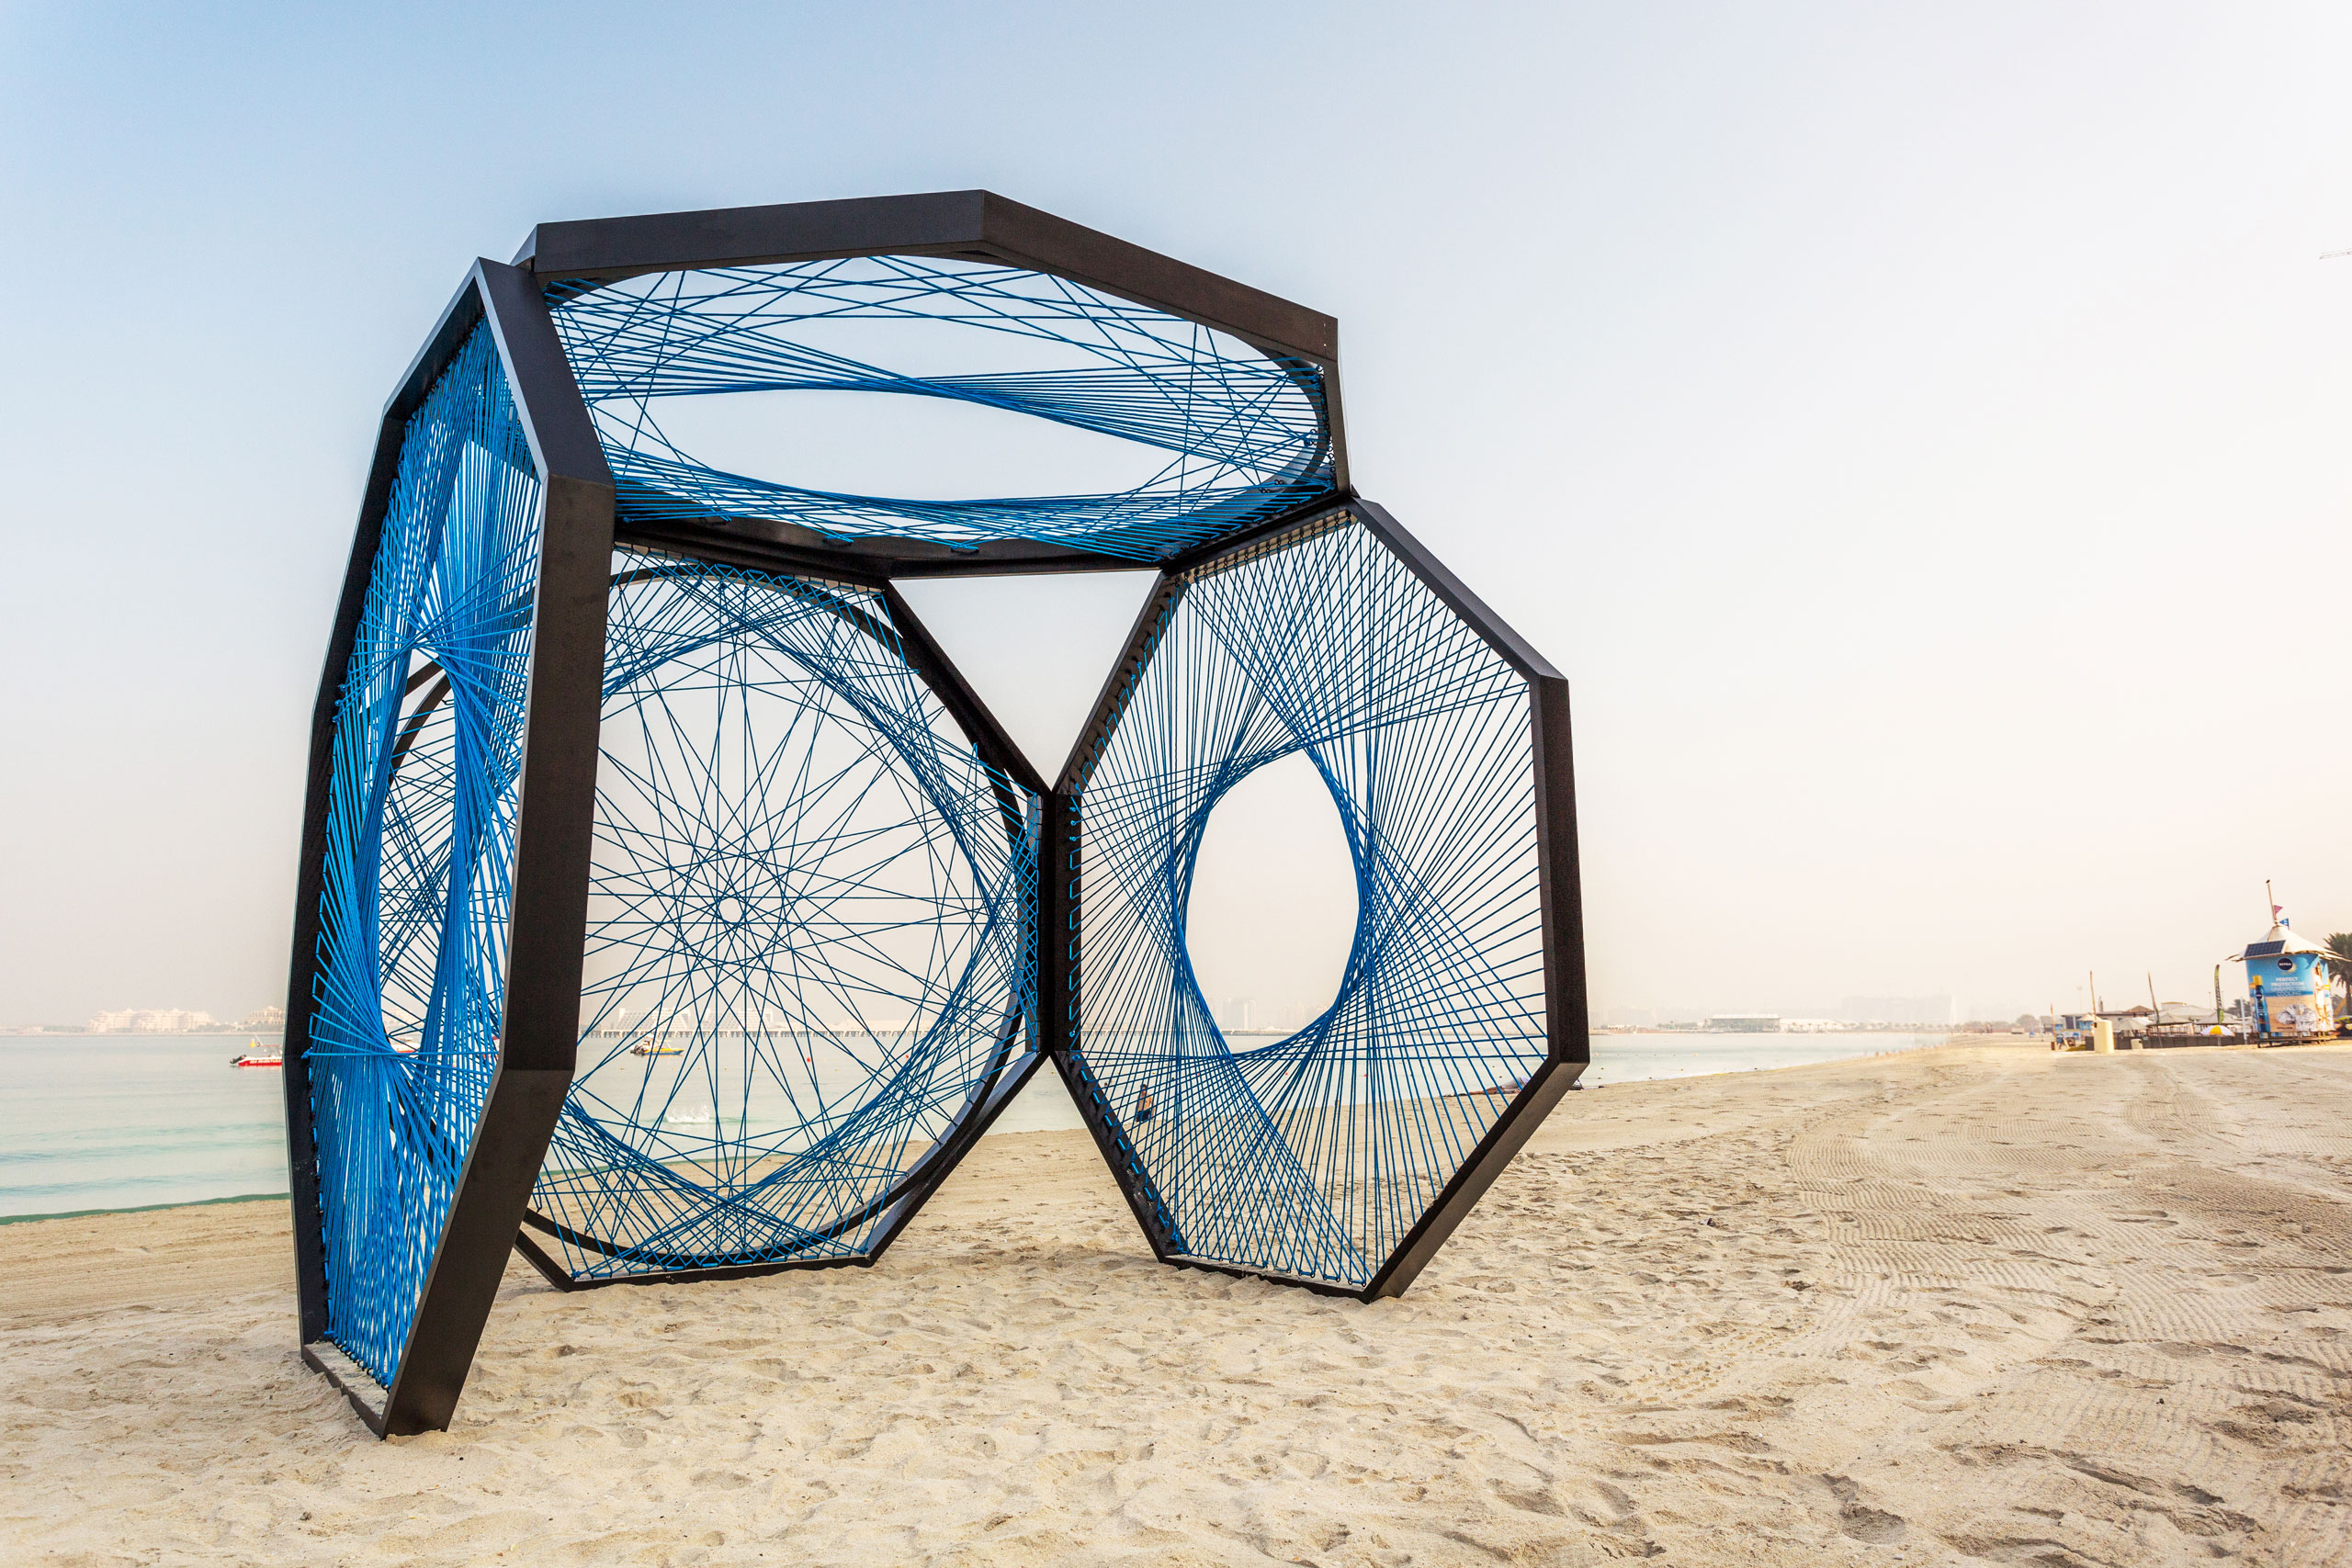 Yaroof installation by Aljoud Lootah. At The Beach, Opposite JBR, Dubai.